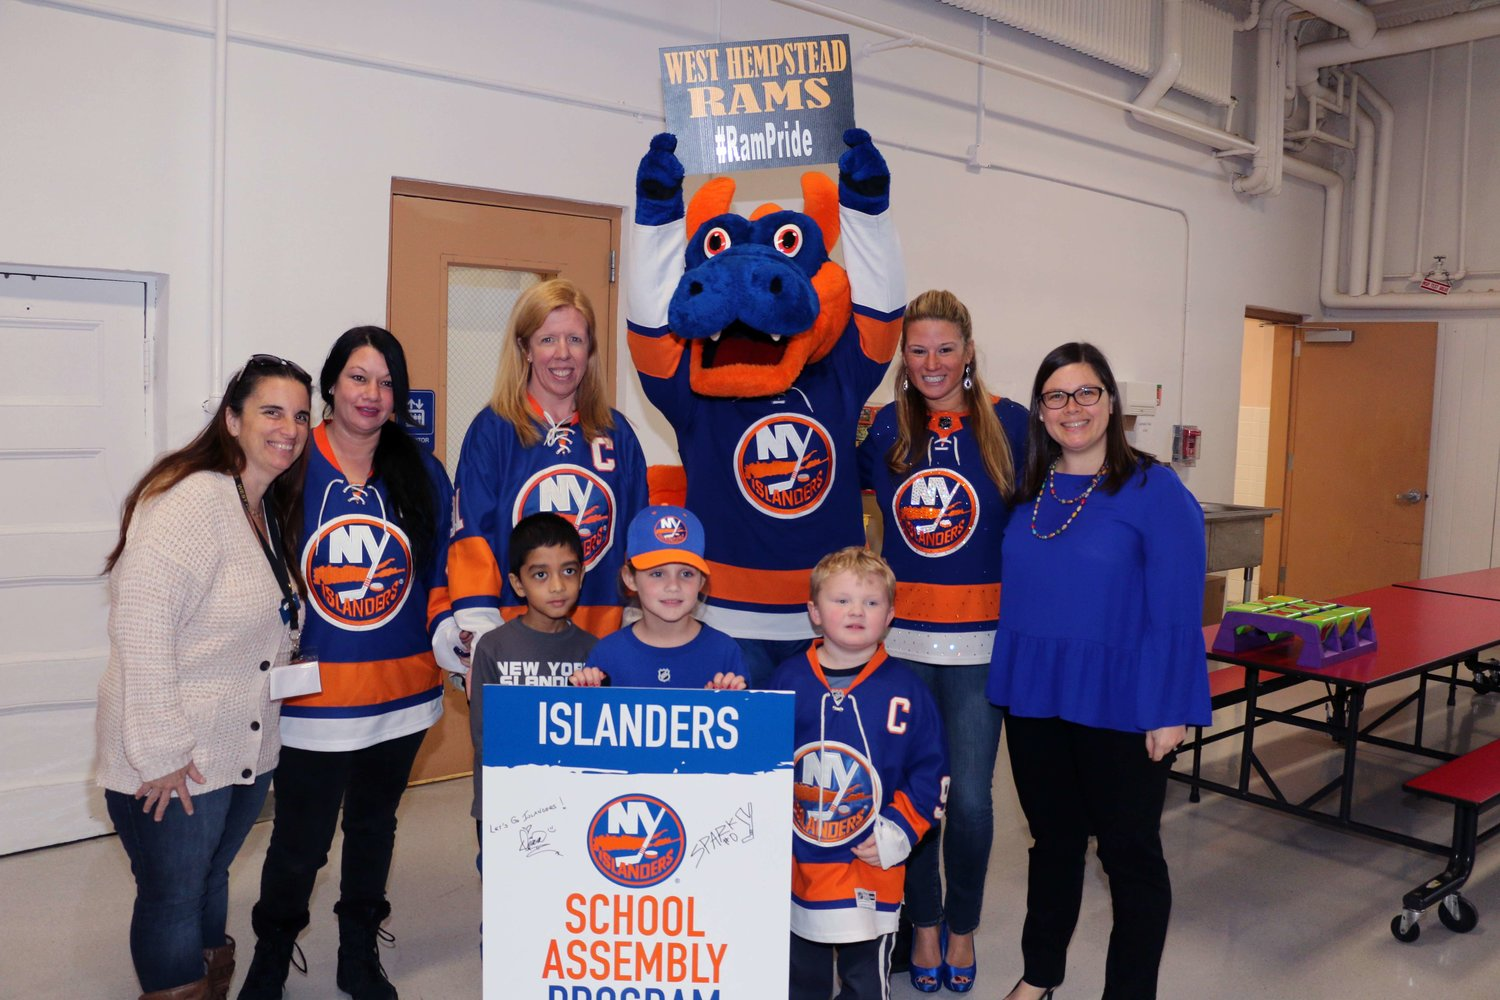 Sparky showed off New York Islanders and West Hempstead pride during an assembly at Chestnut Street School on Jan. 3.